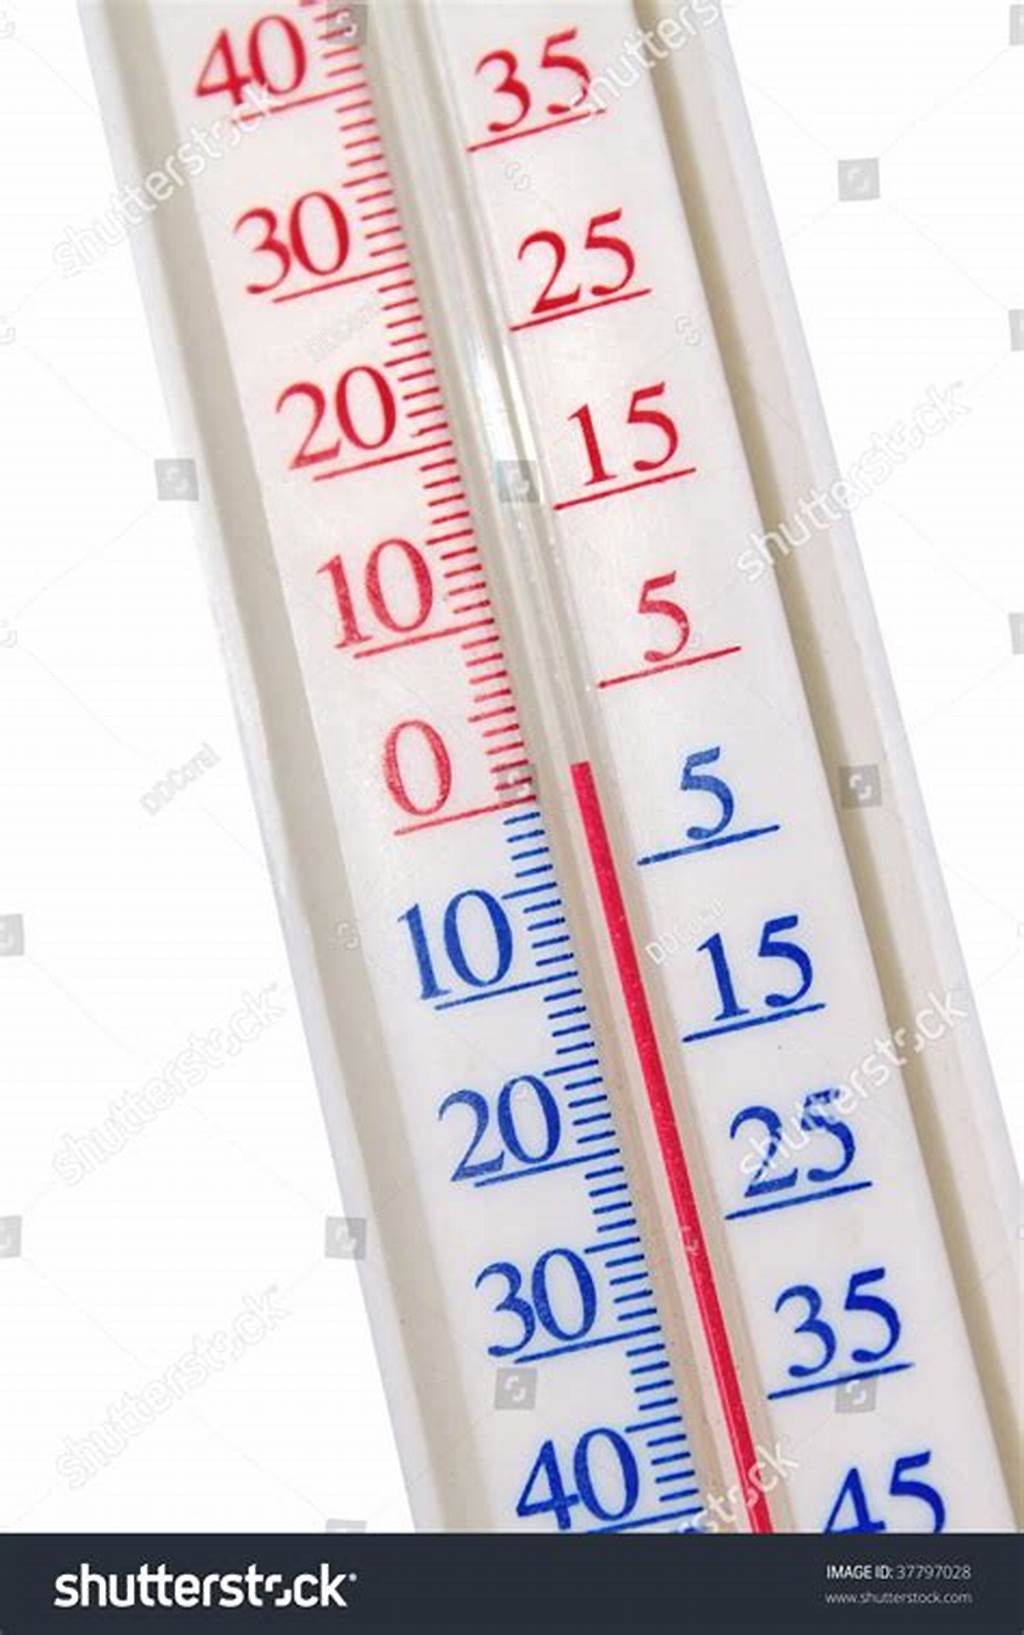 #Red #Mercury #Thermometer #Stock #Photo #37797028